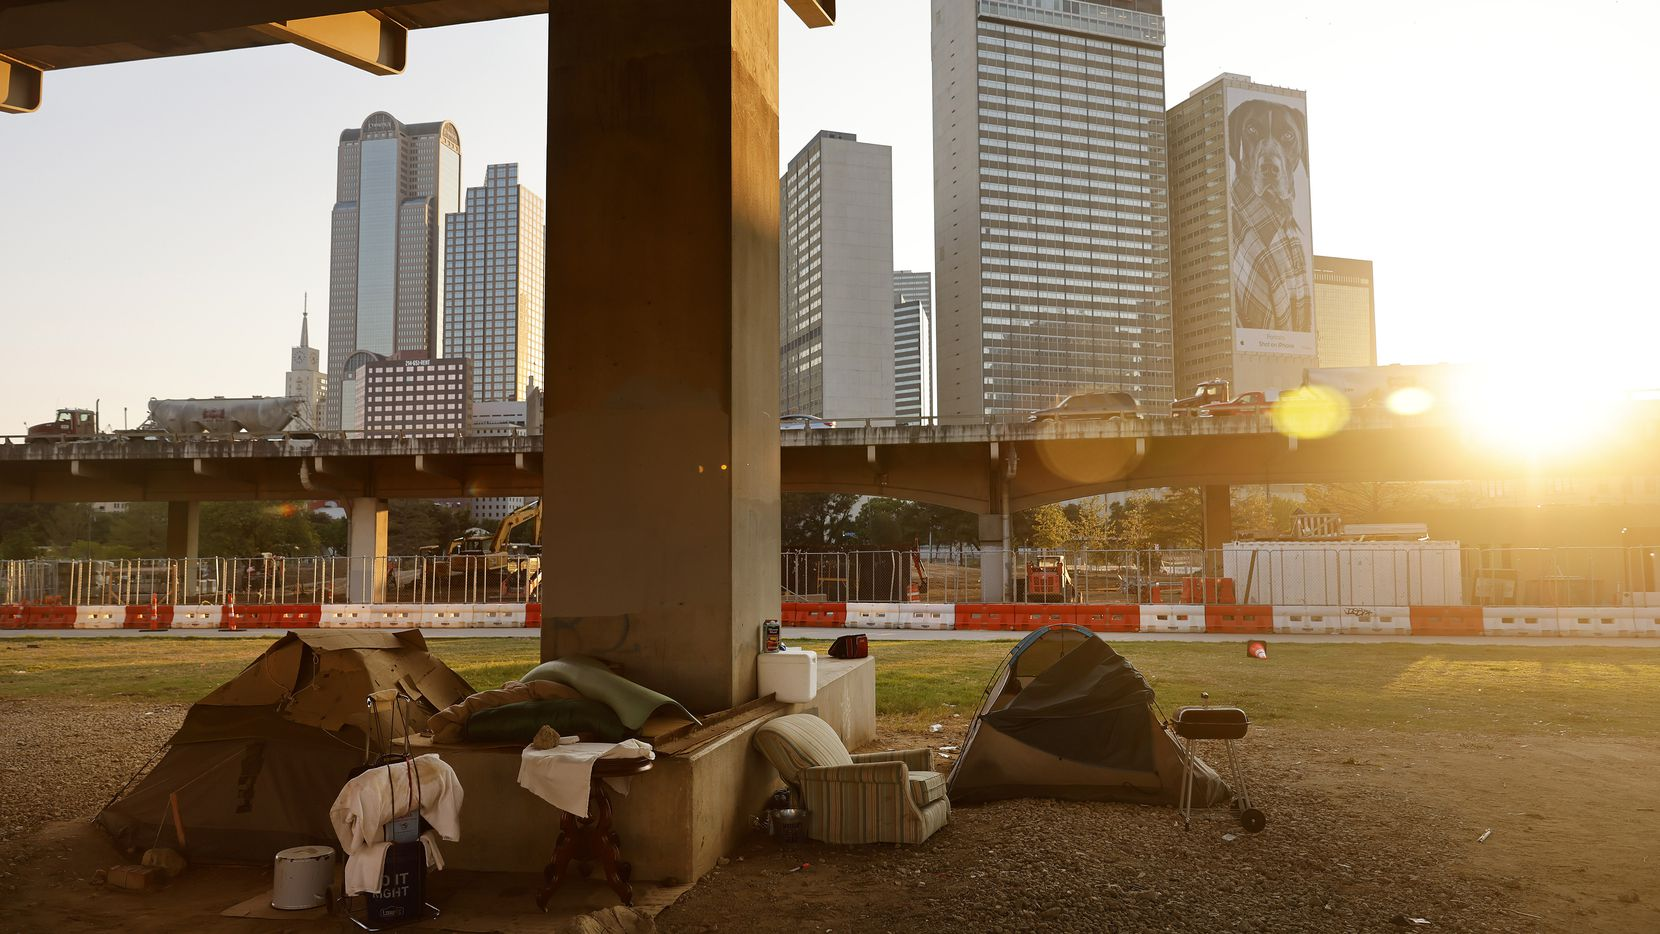 The sun sets behind a homeless encampment under the I-345 overhead in downtown Dallas, Thursday, August 26, 2021.(Tom Fox/The Dallas Morning News)